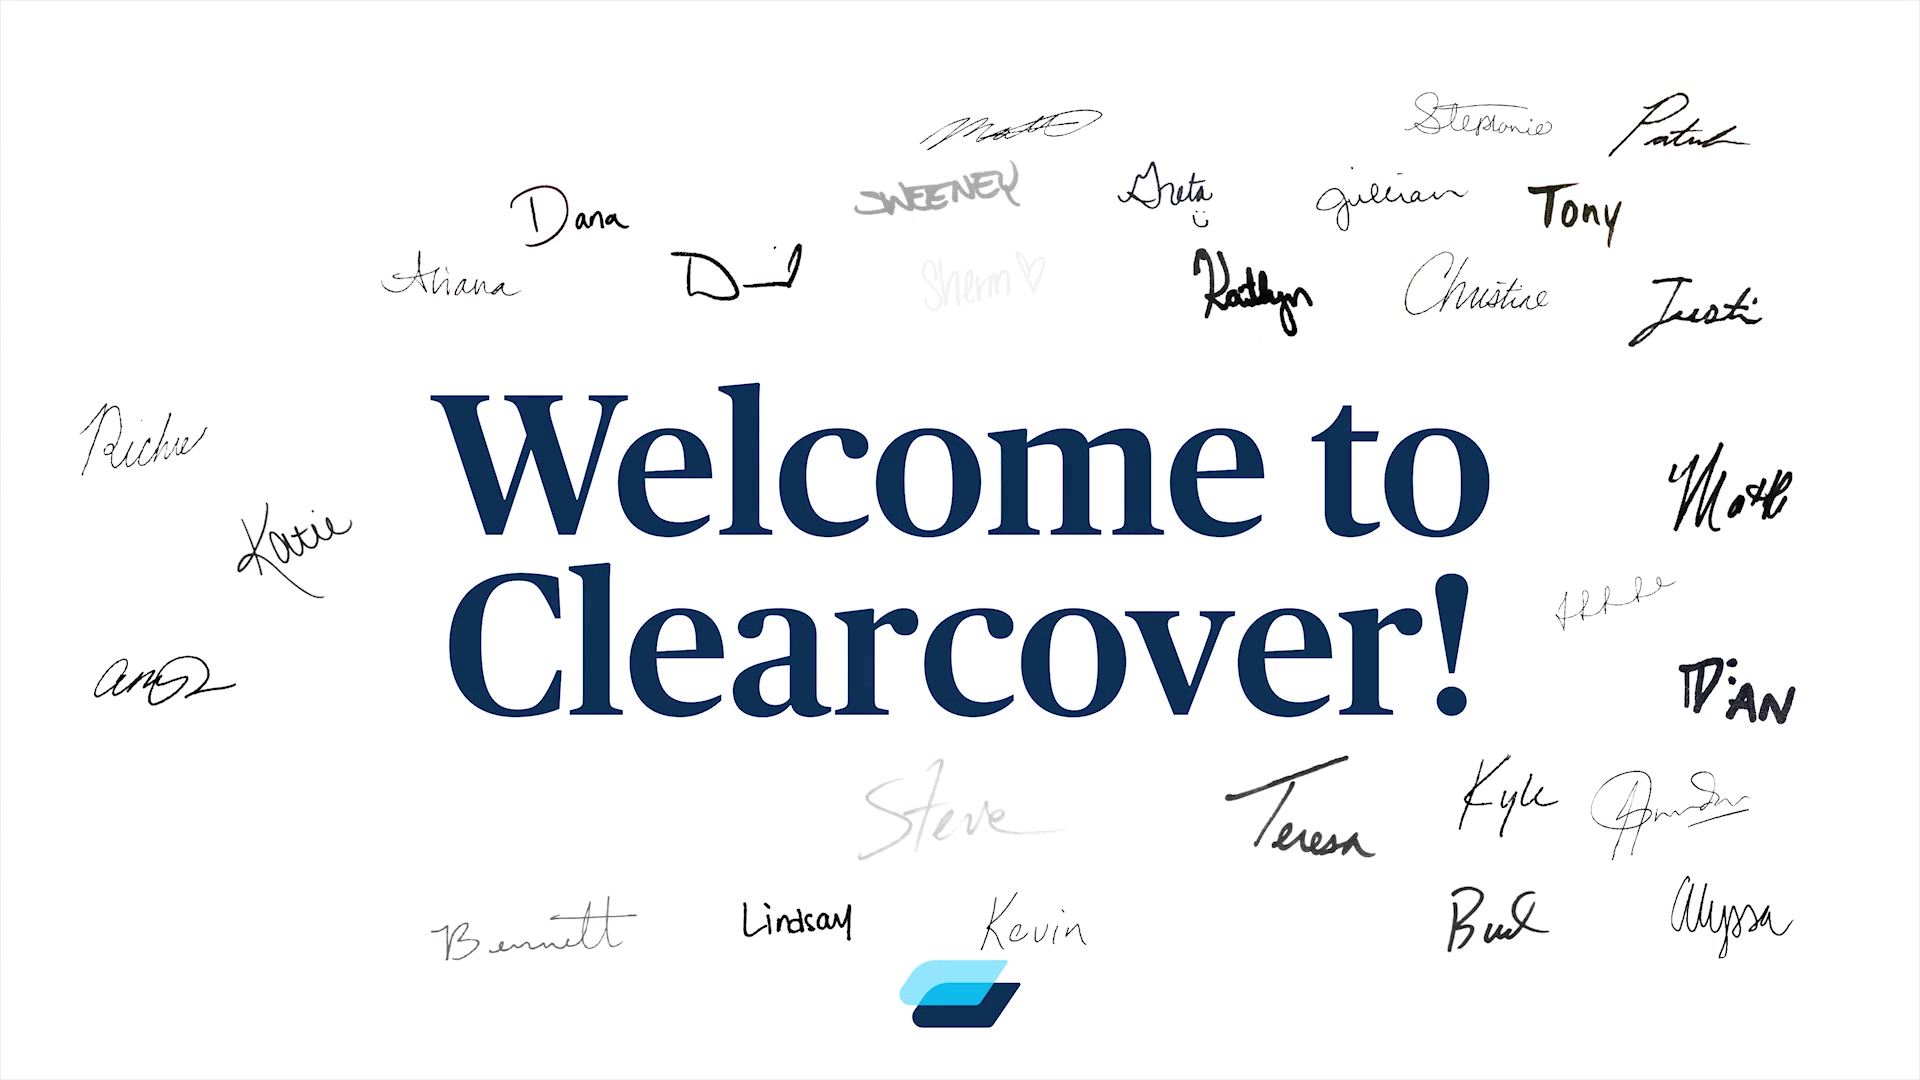 Welcome to Clearcover! (1)